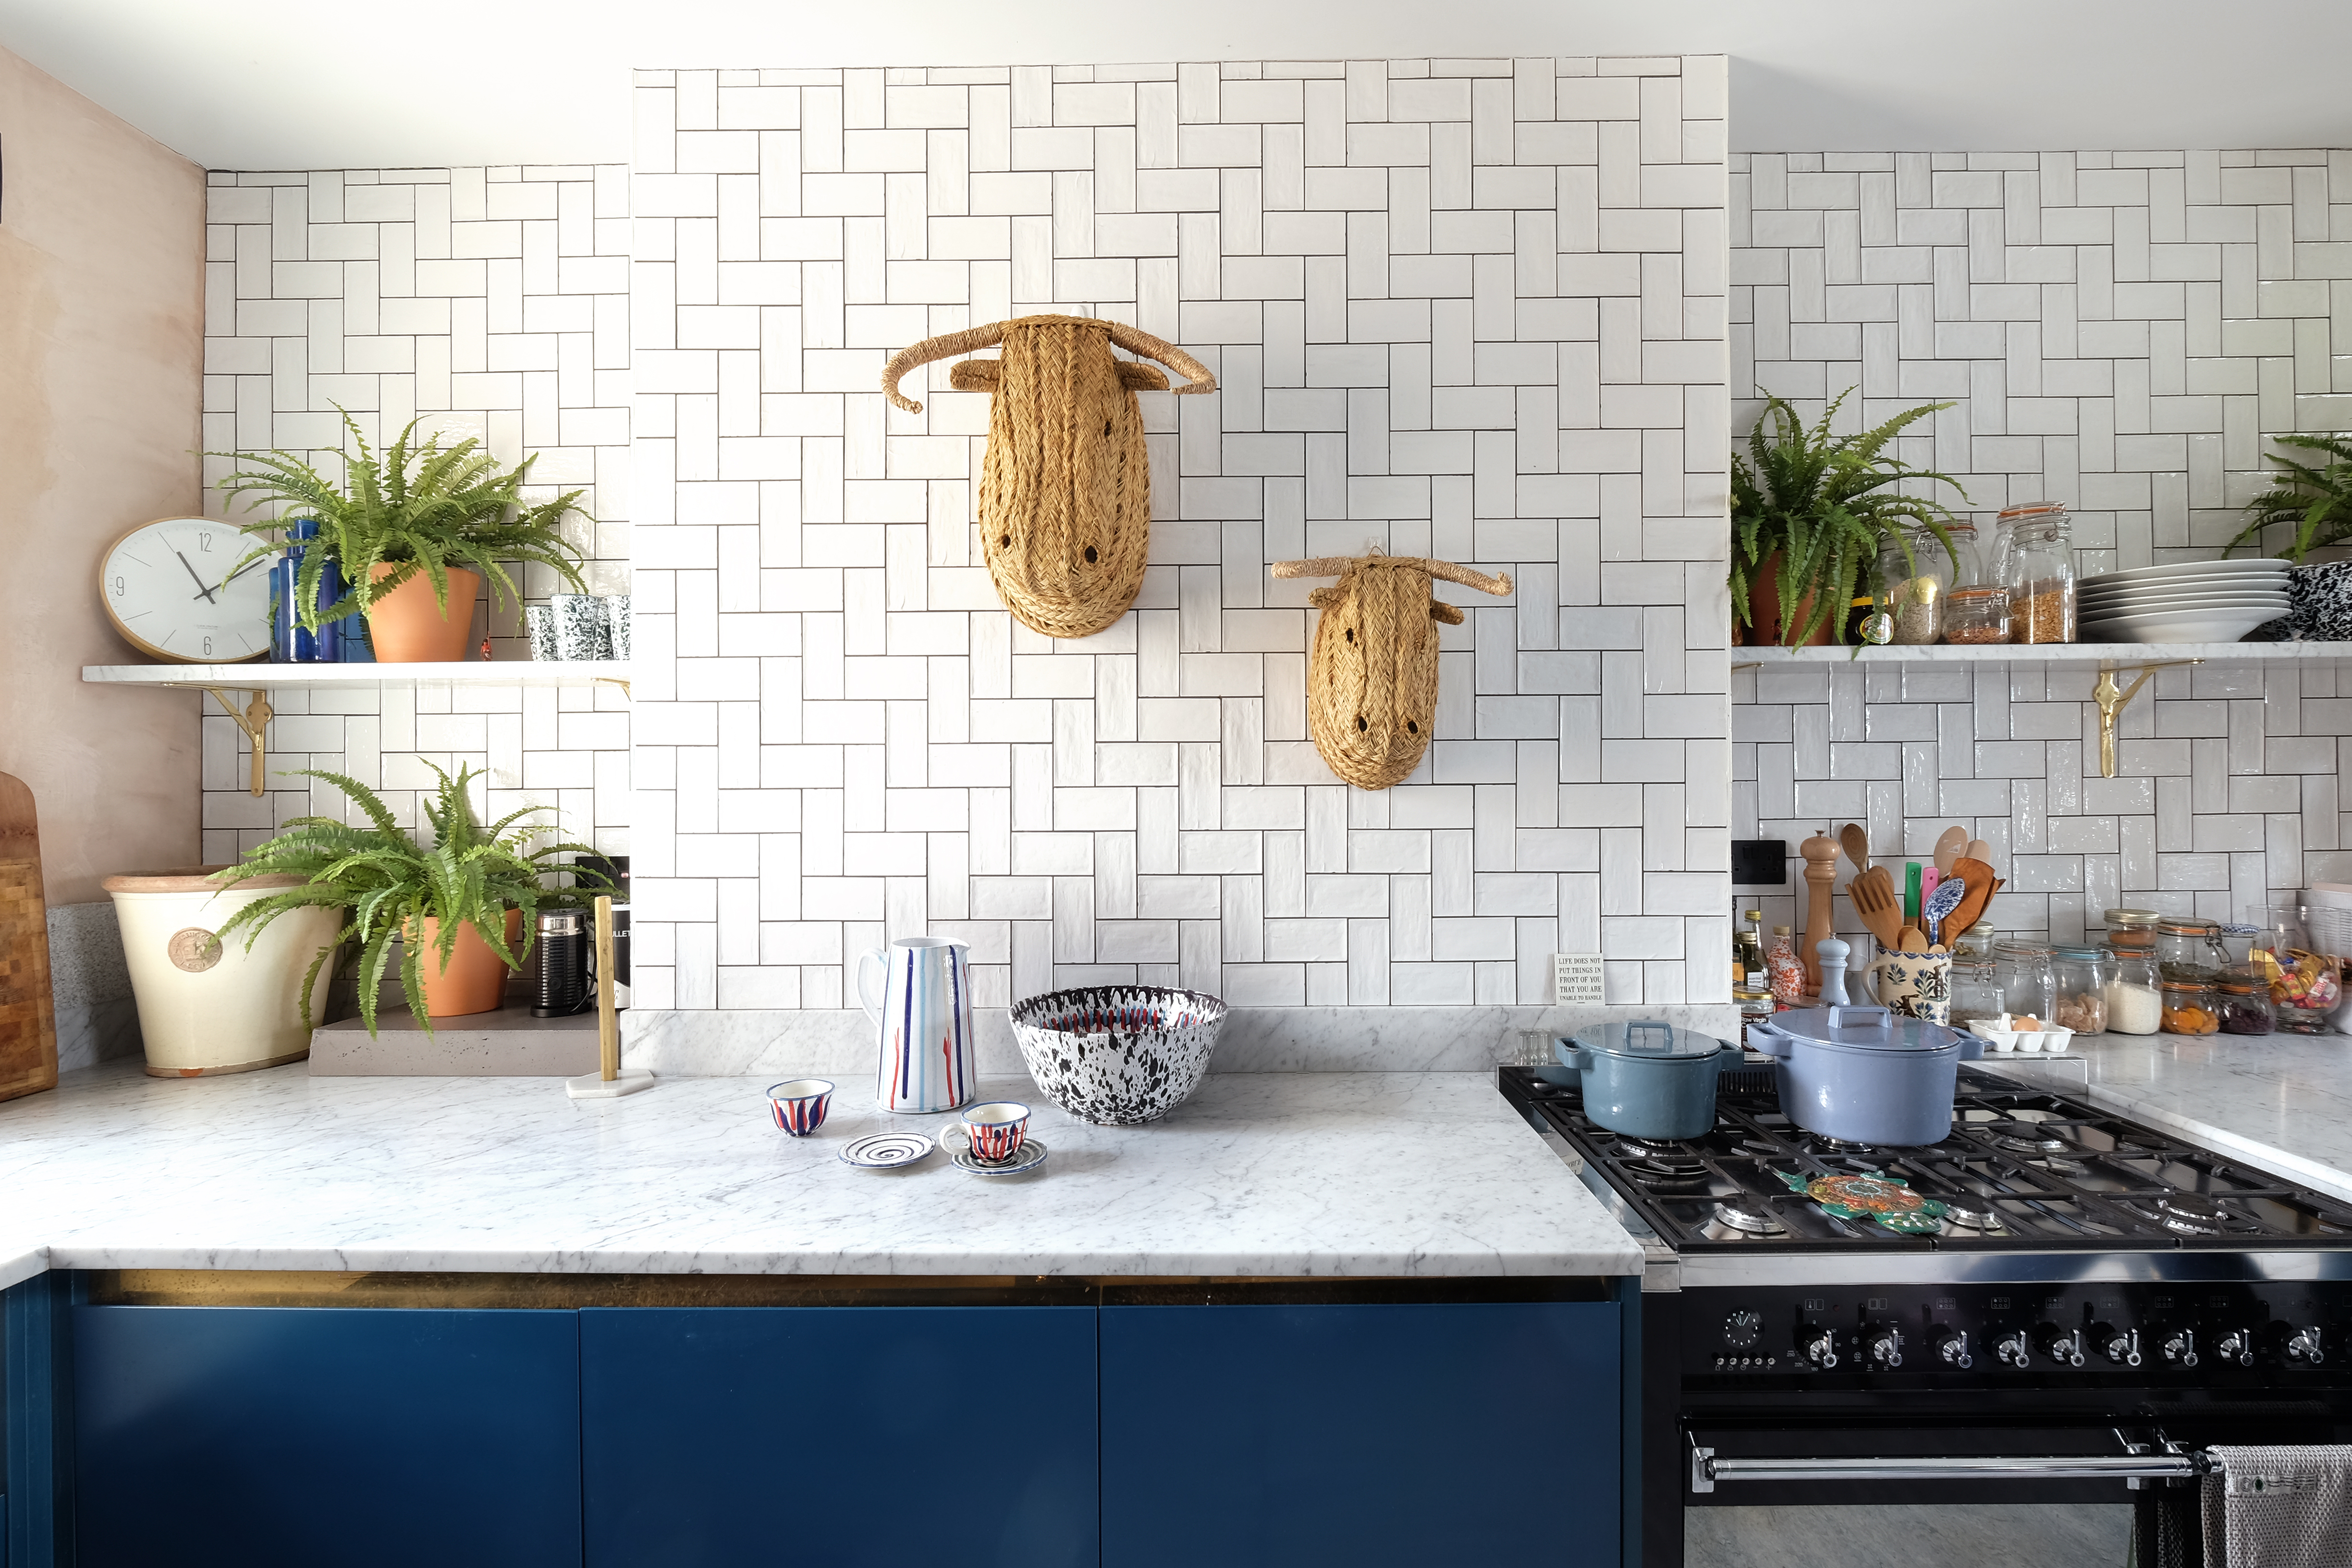 Basic White Tile Kitchen Backsplash Inspiration | Apartment ...